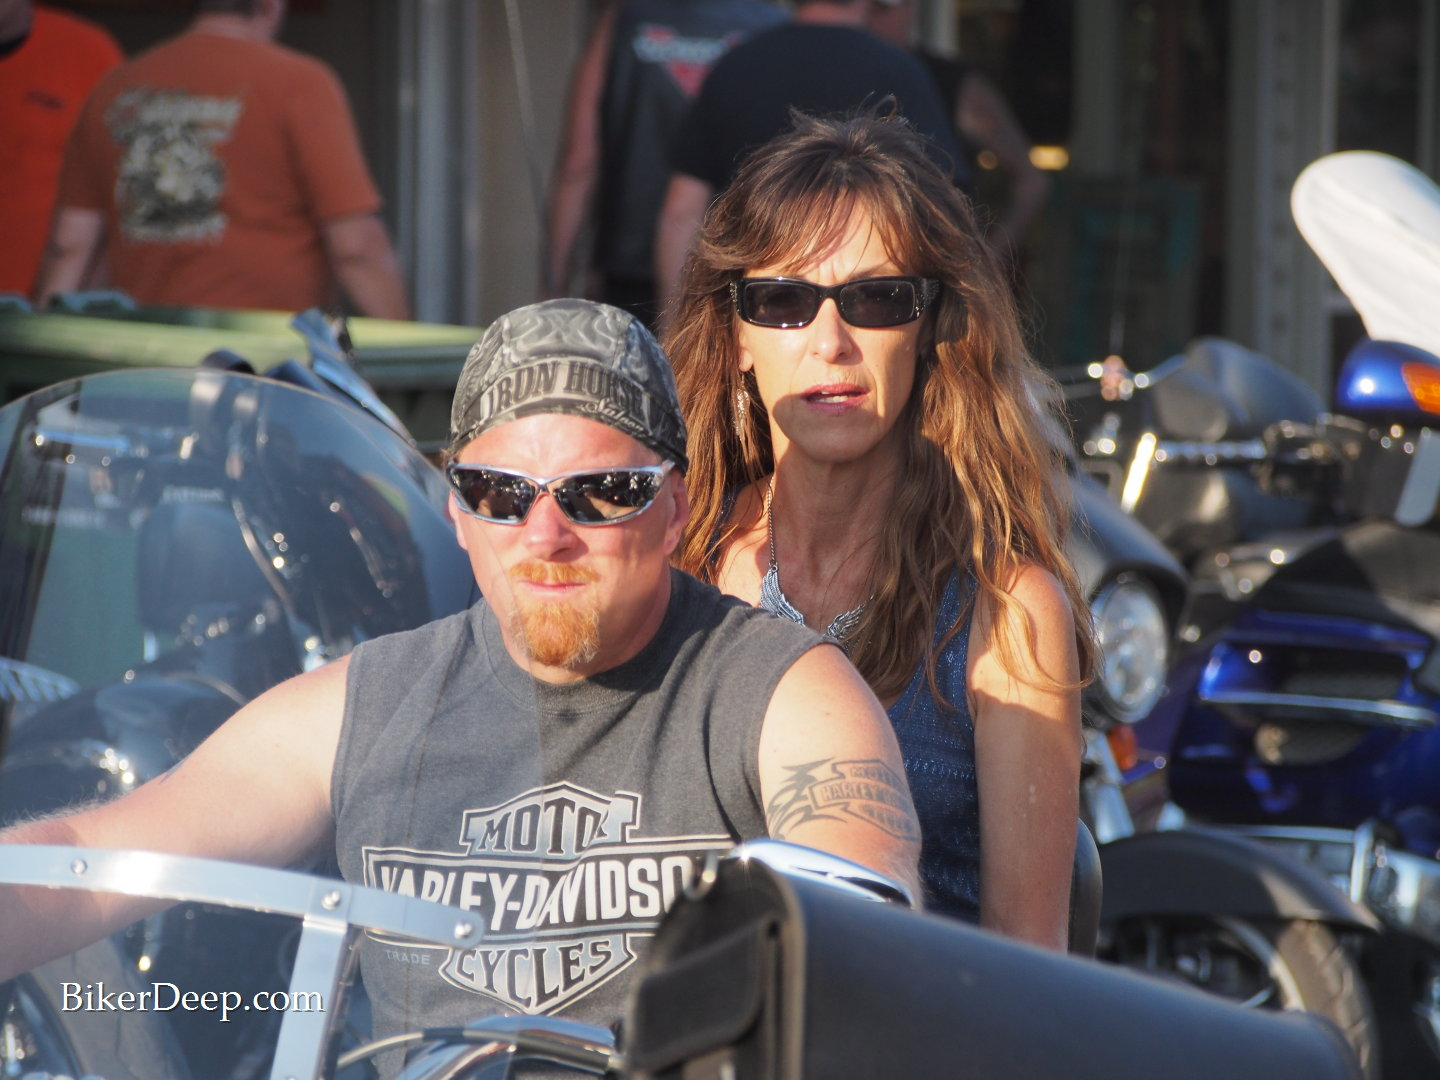 Harley Davidson people